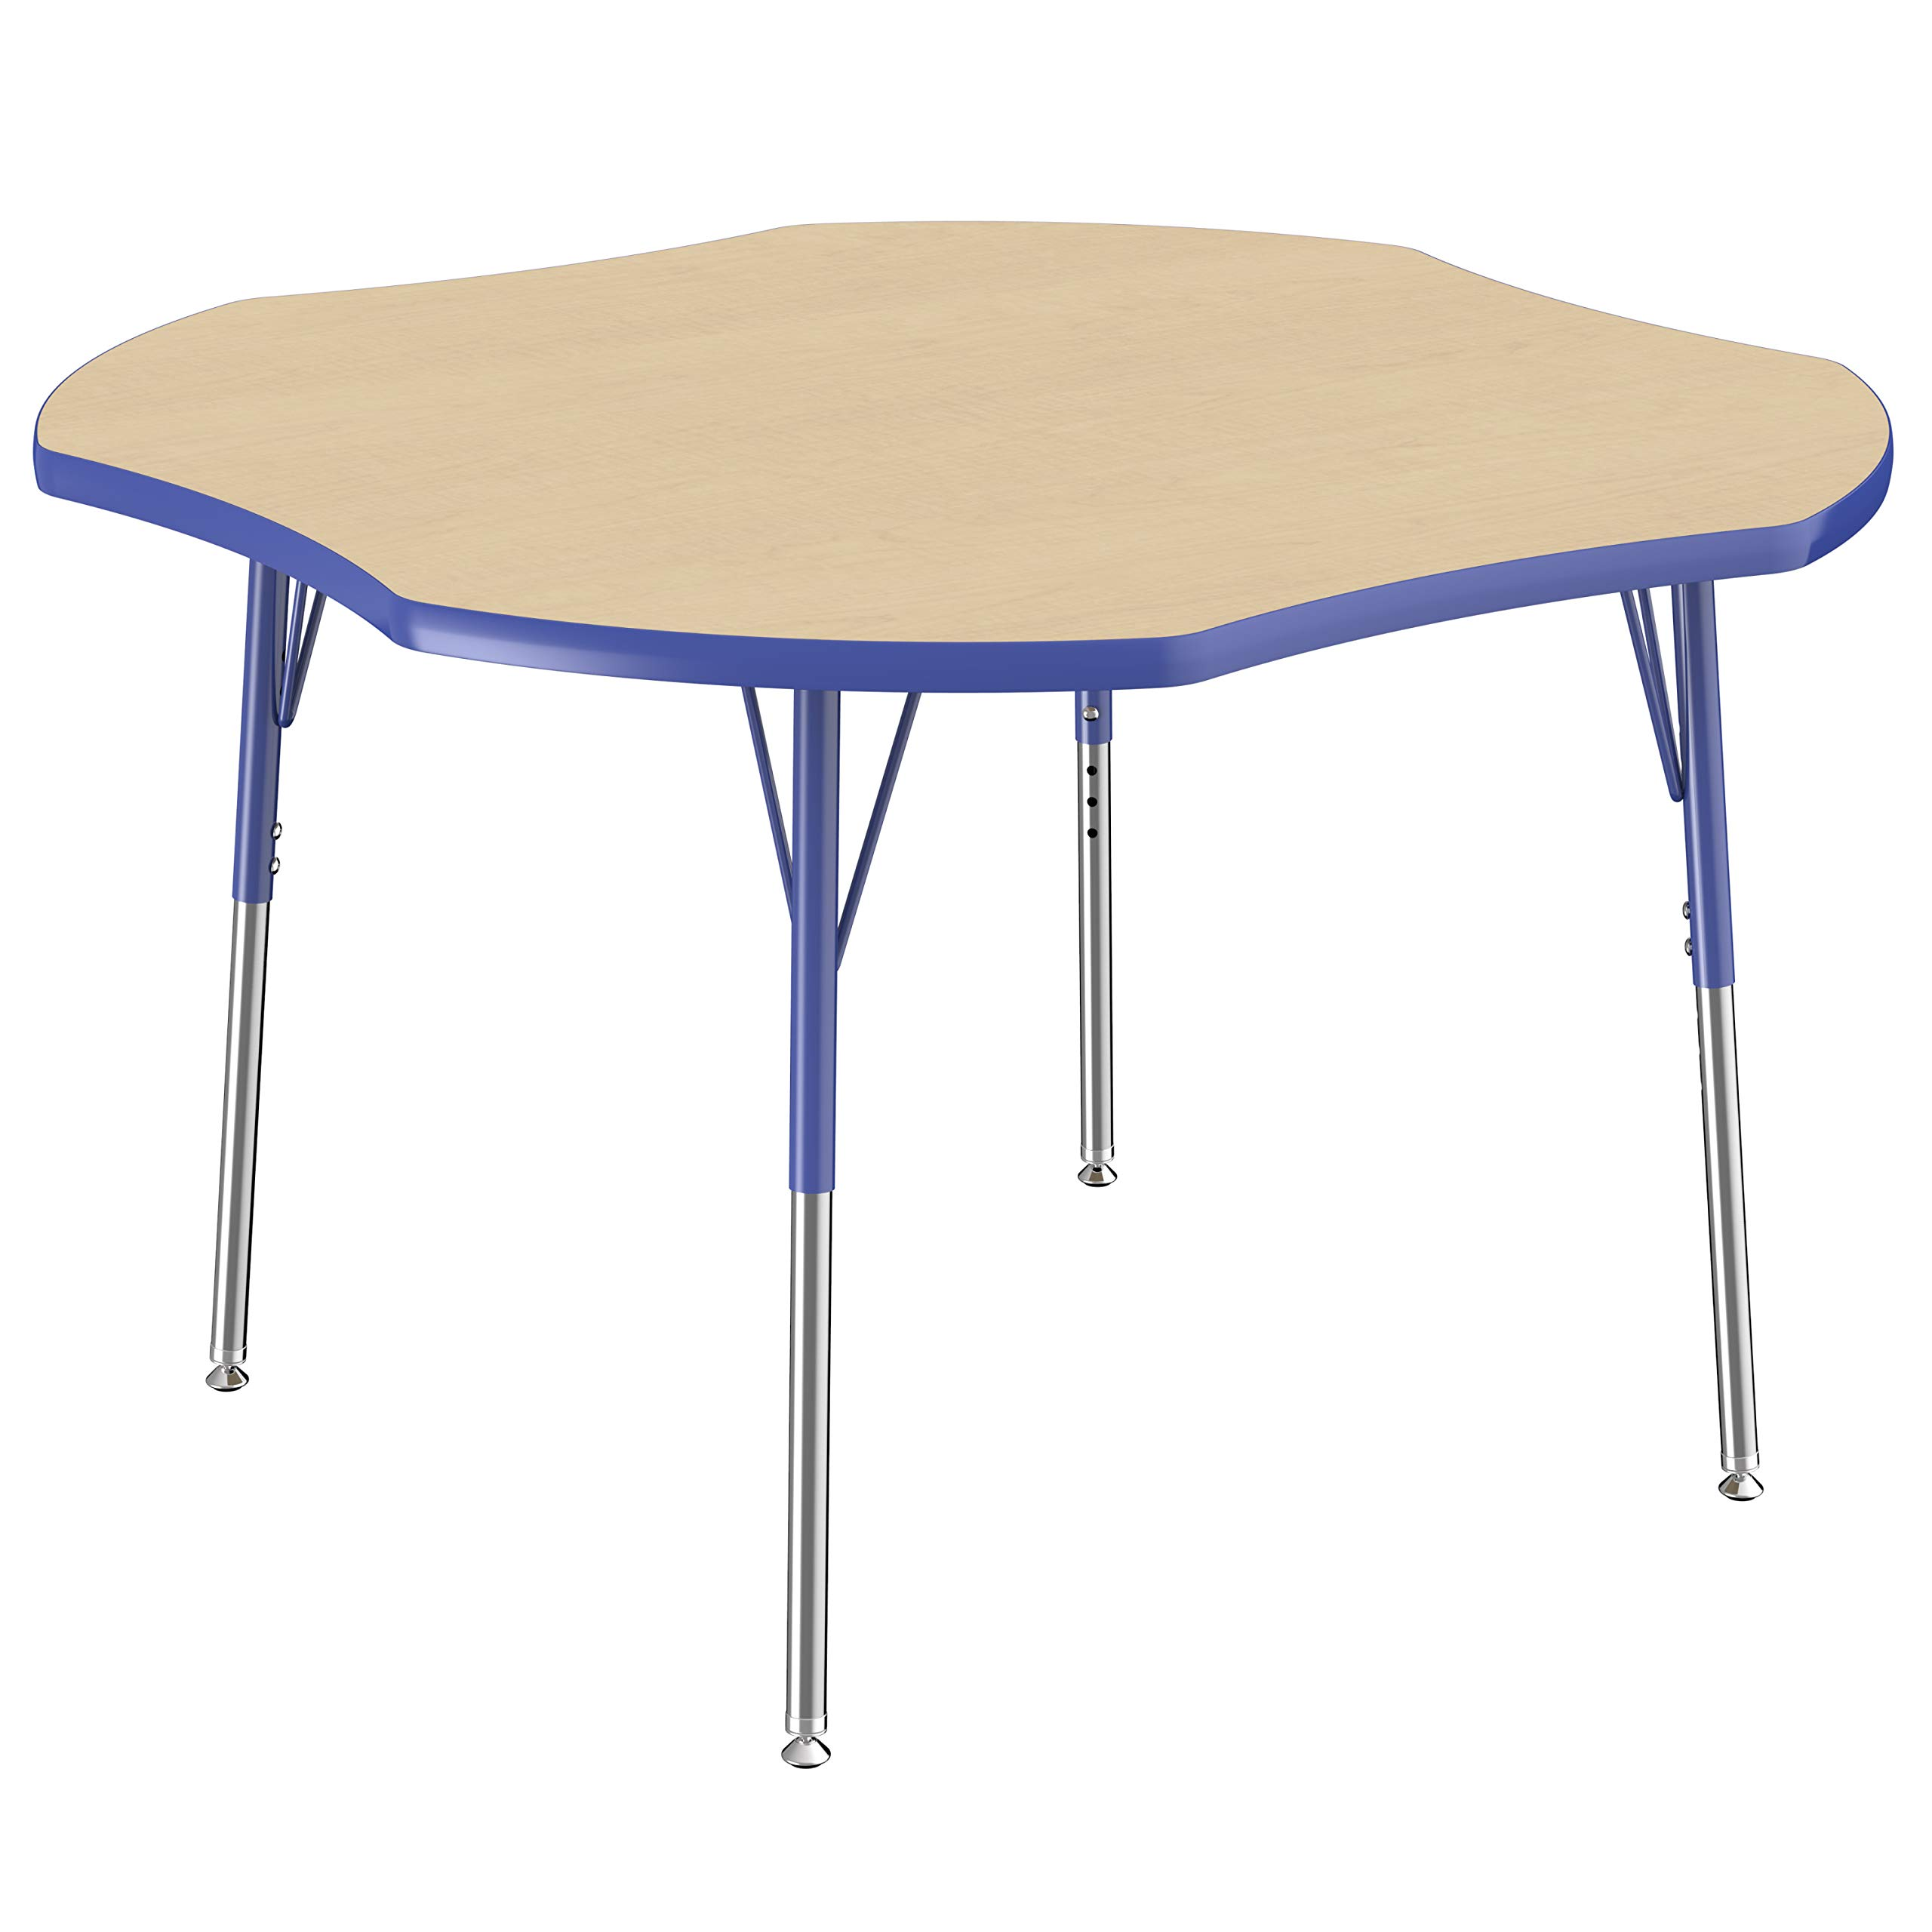 FDP Clover Activity School and Office Table (48 x 48 inch), Standard Legs with Swivel Glides for Collaborative Seating Environments, Adjustable Height 19-30 inches - Maple Top and Blue Edge